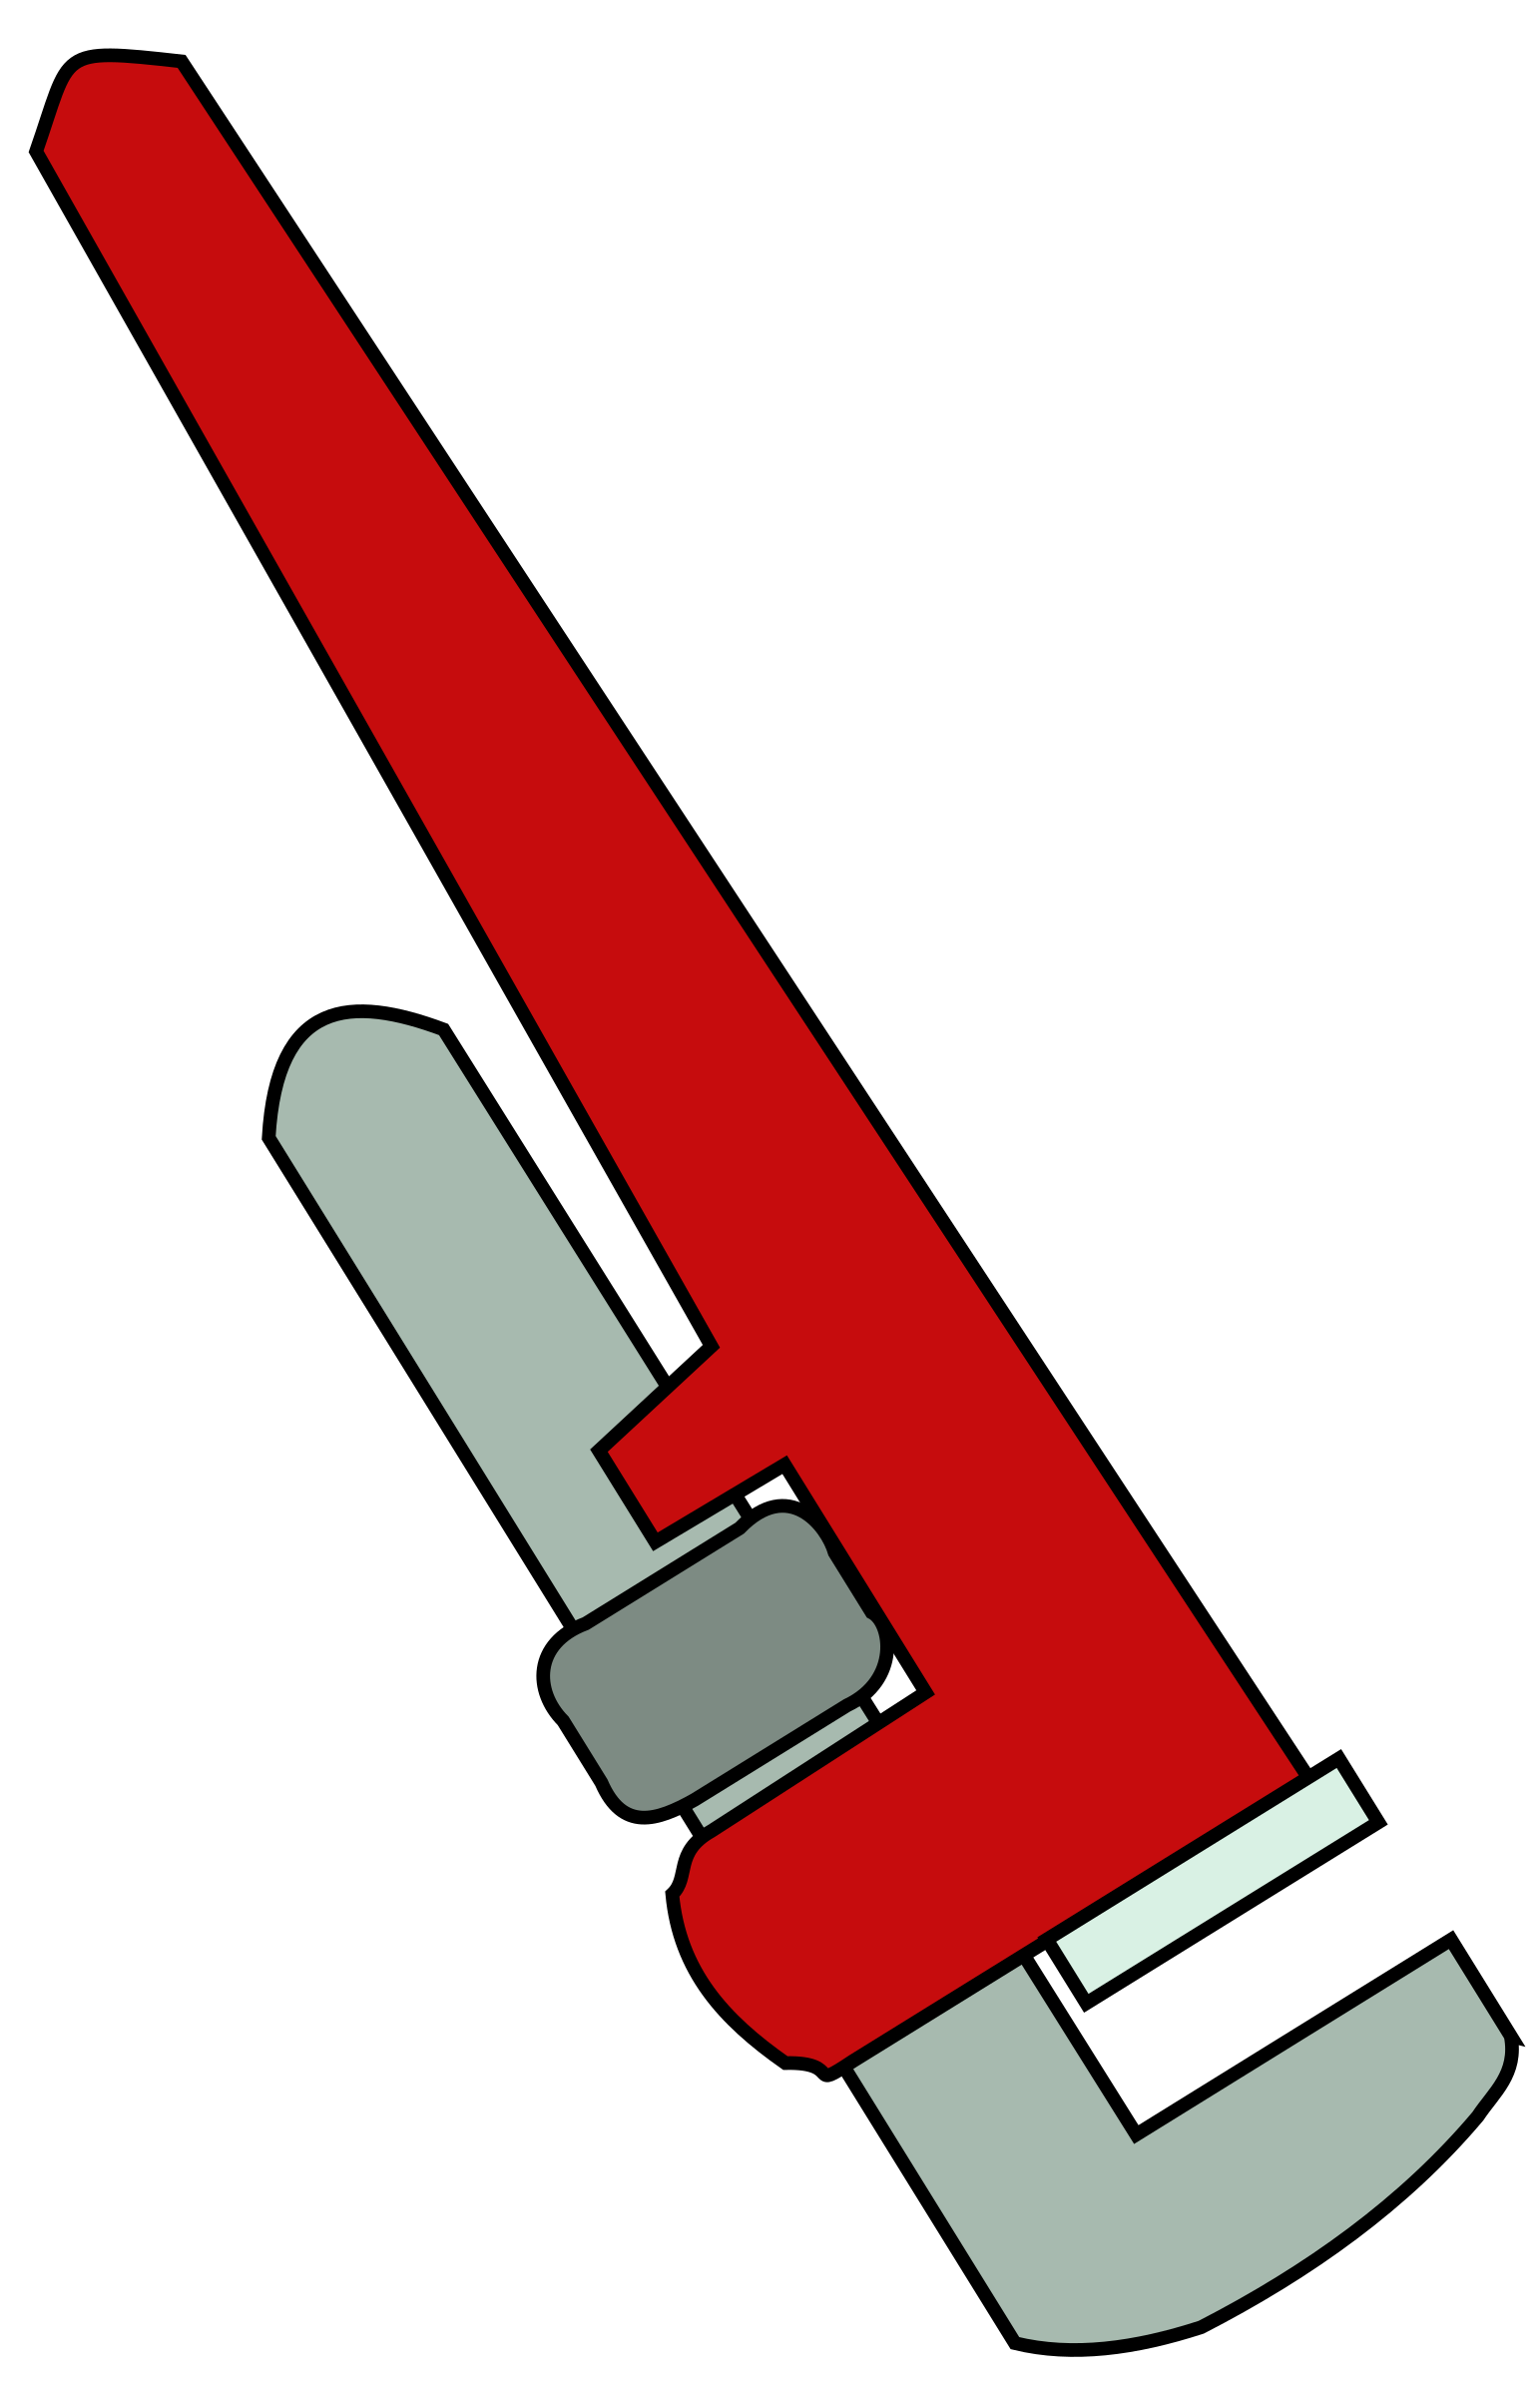 Red clipart wrench #3